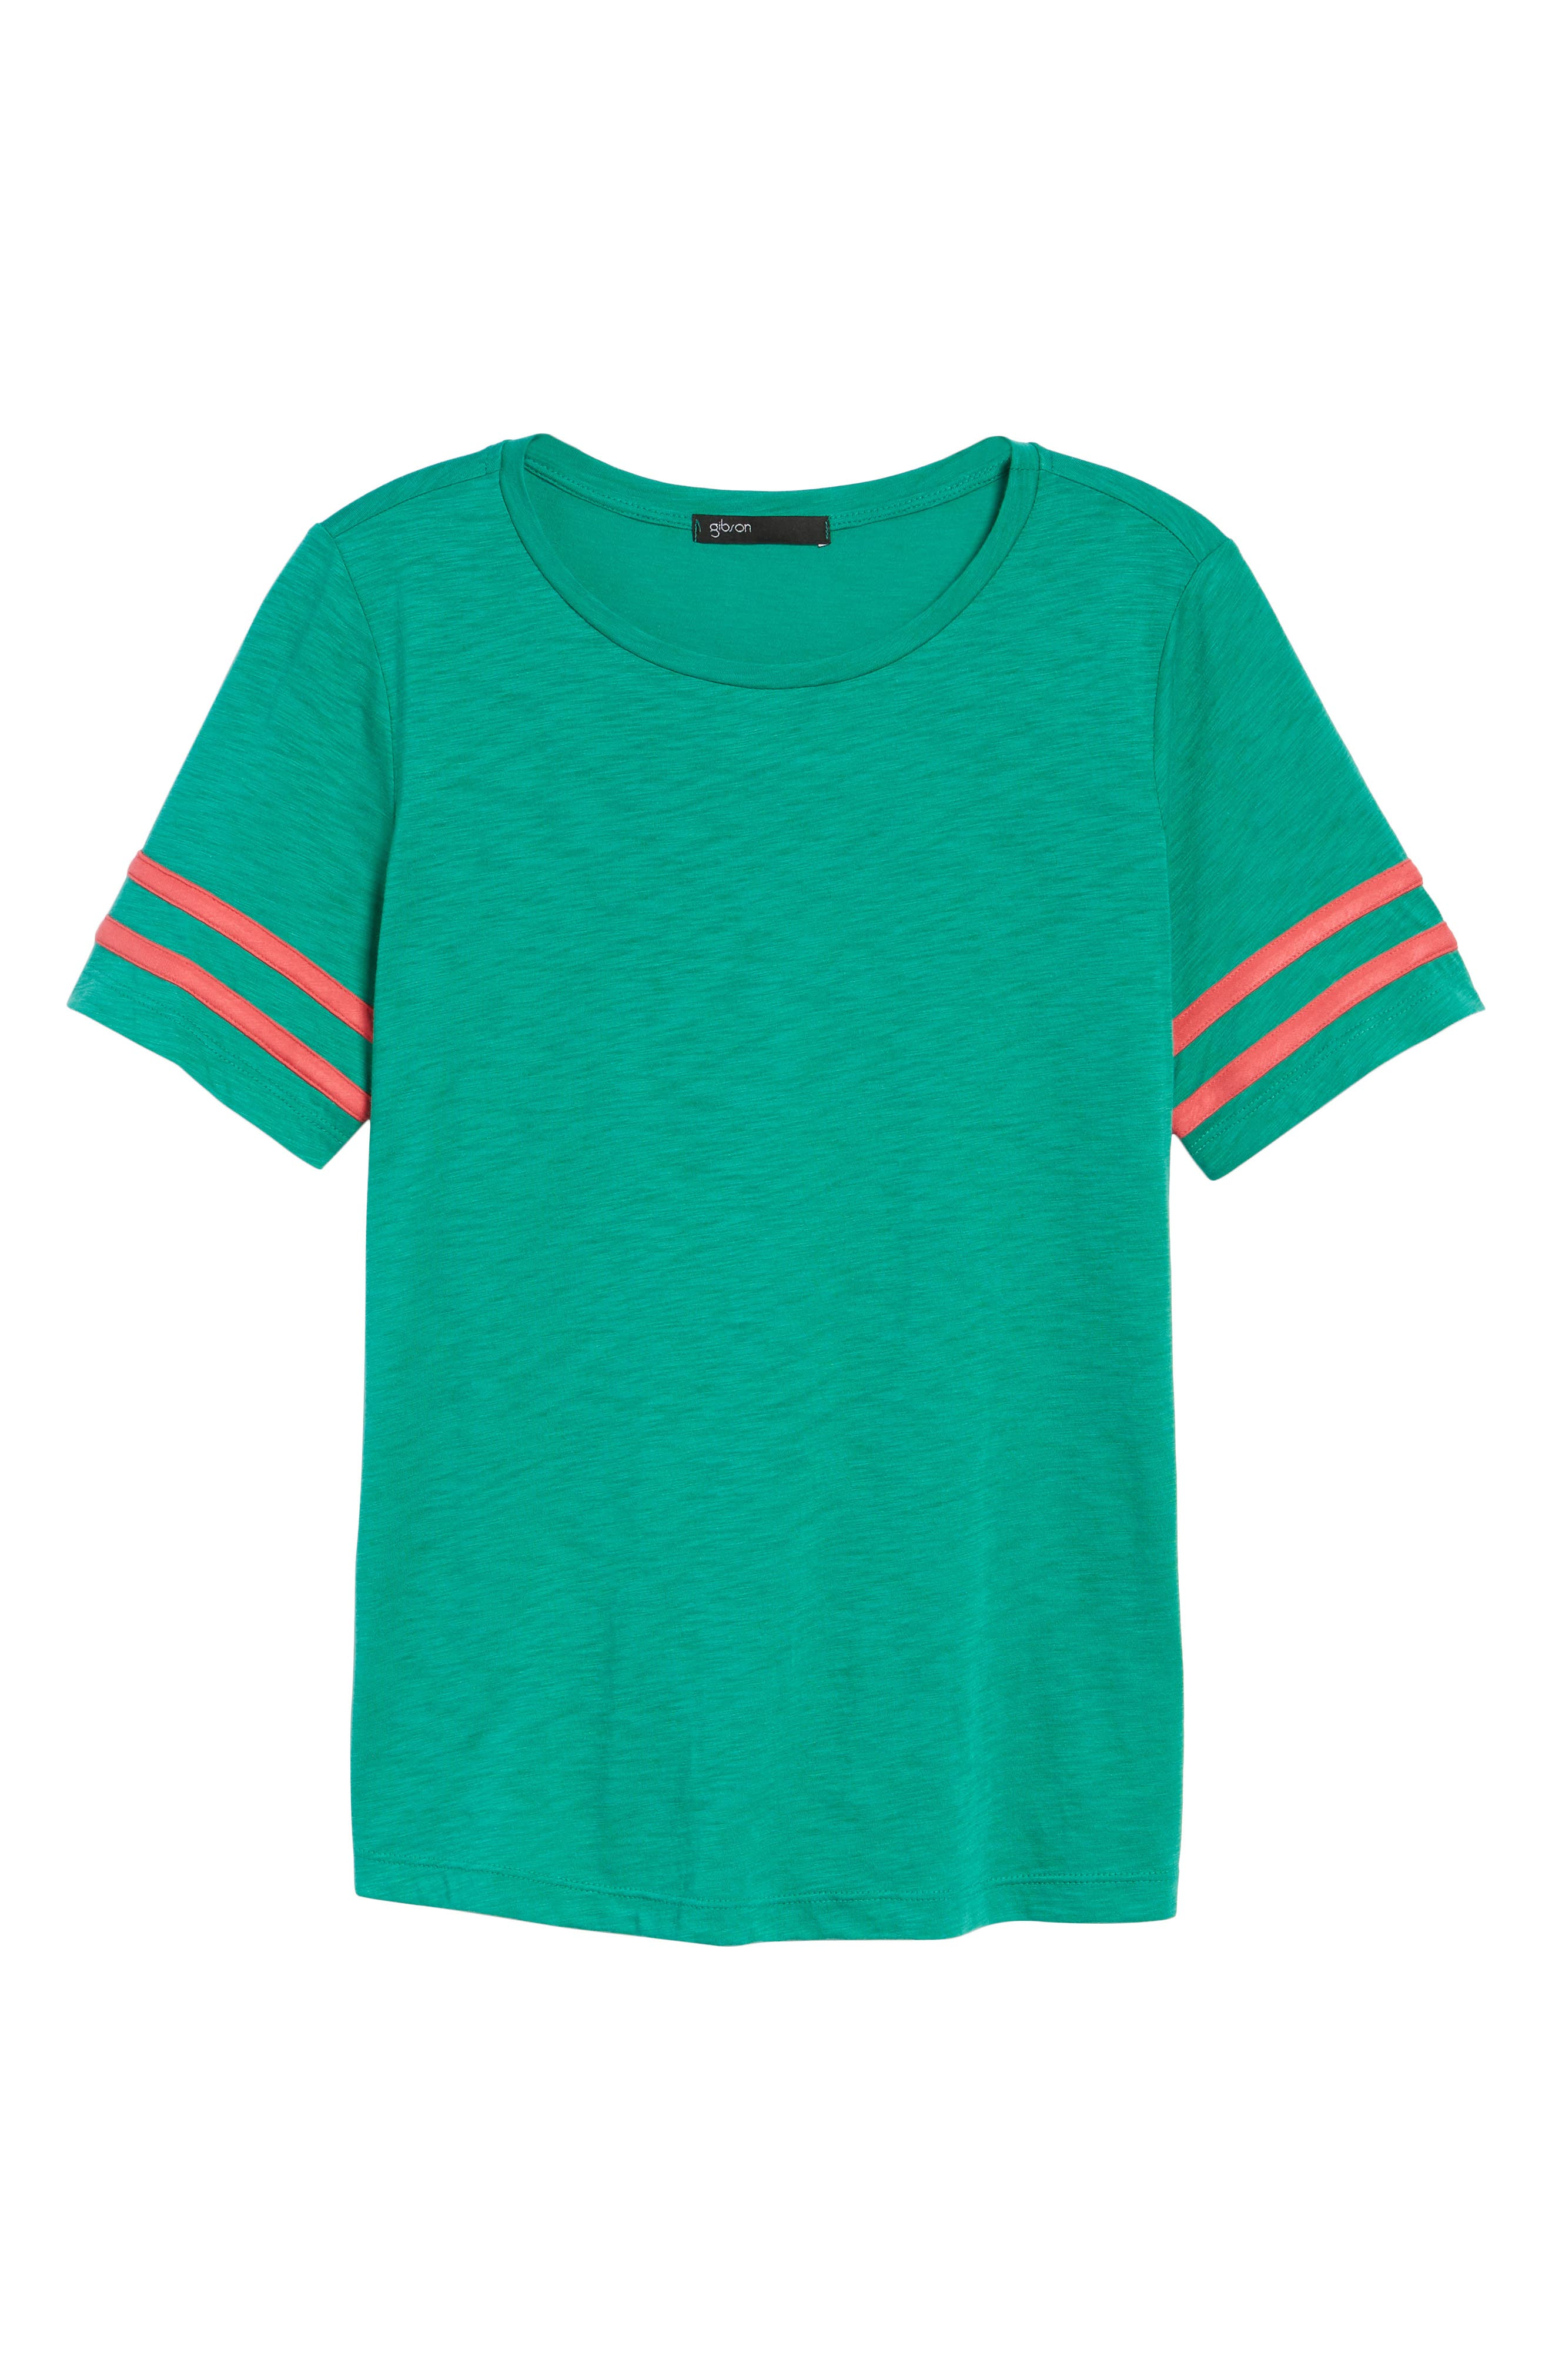 Stripe Sleeve Cotton Blend Athletic Tee,                             Alternate thumbnail 7, color,                             Green Lake With Pink